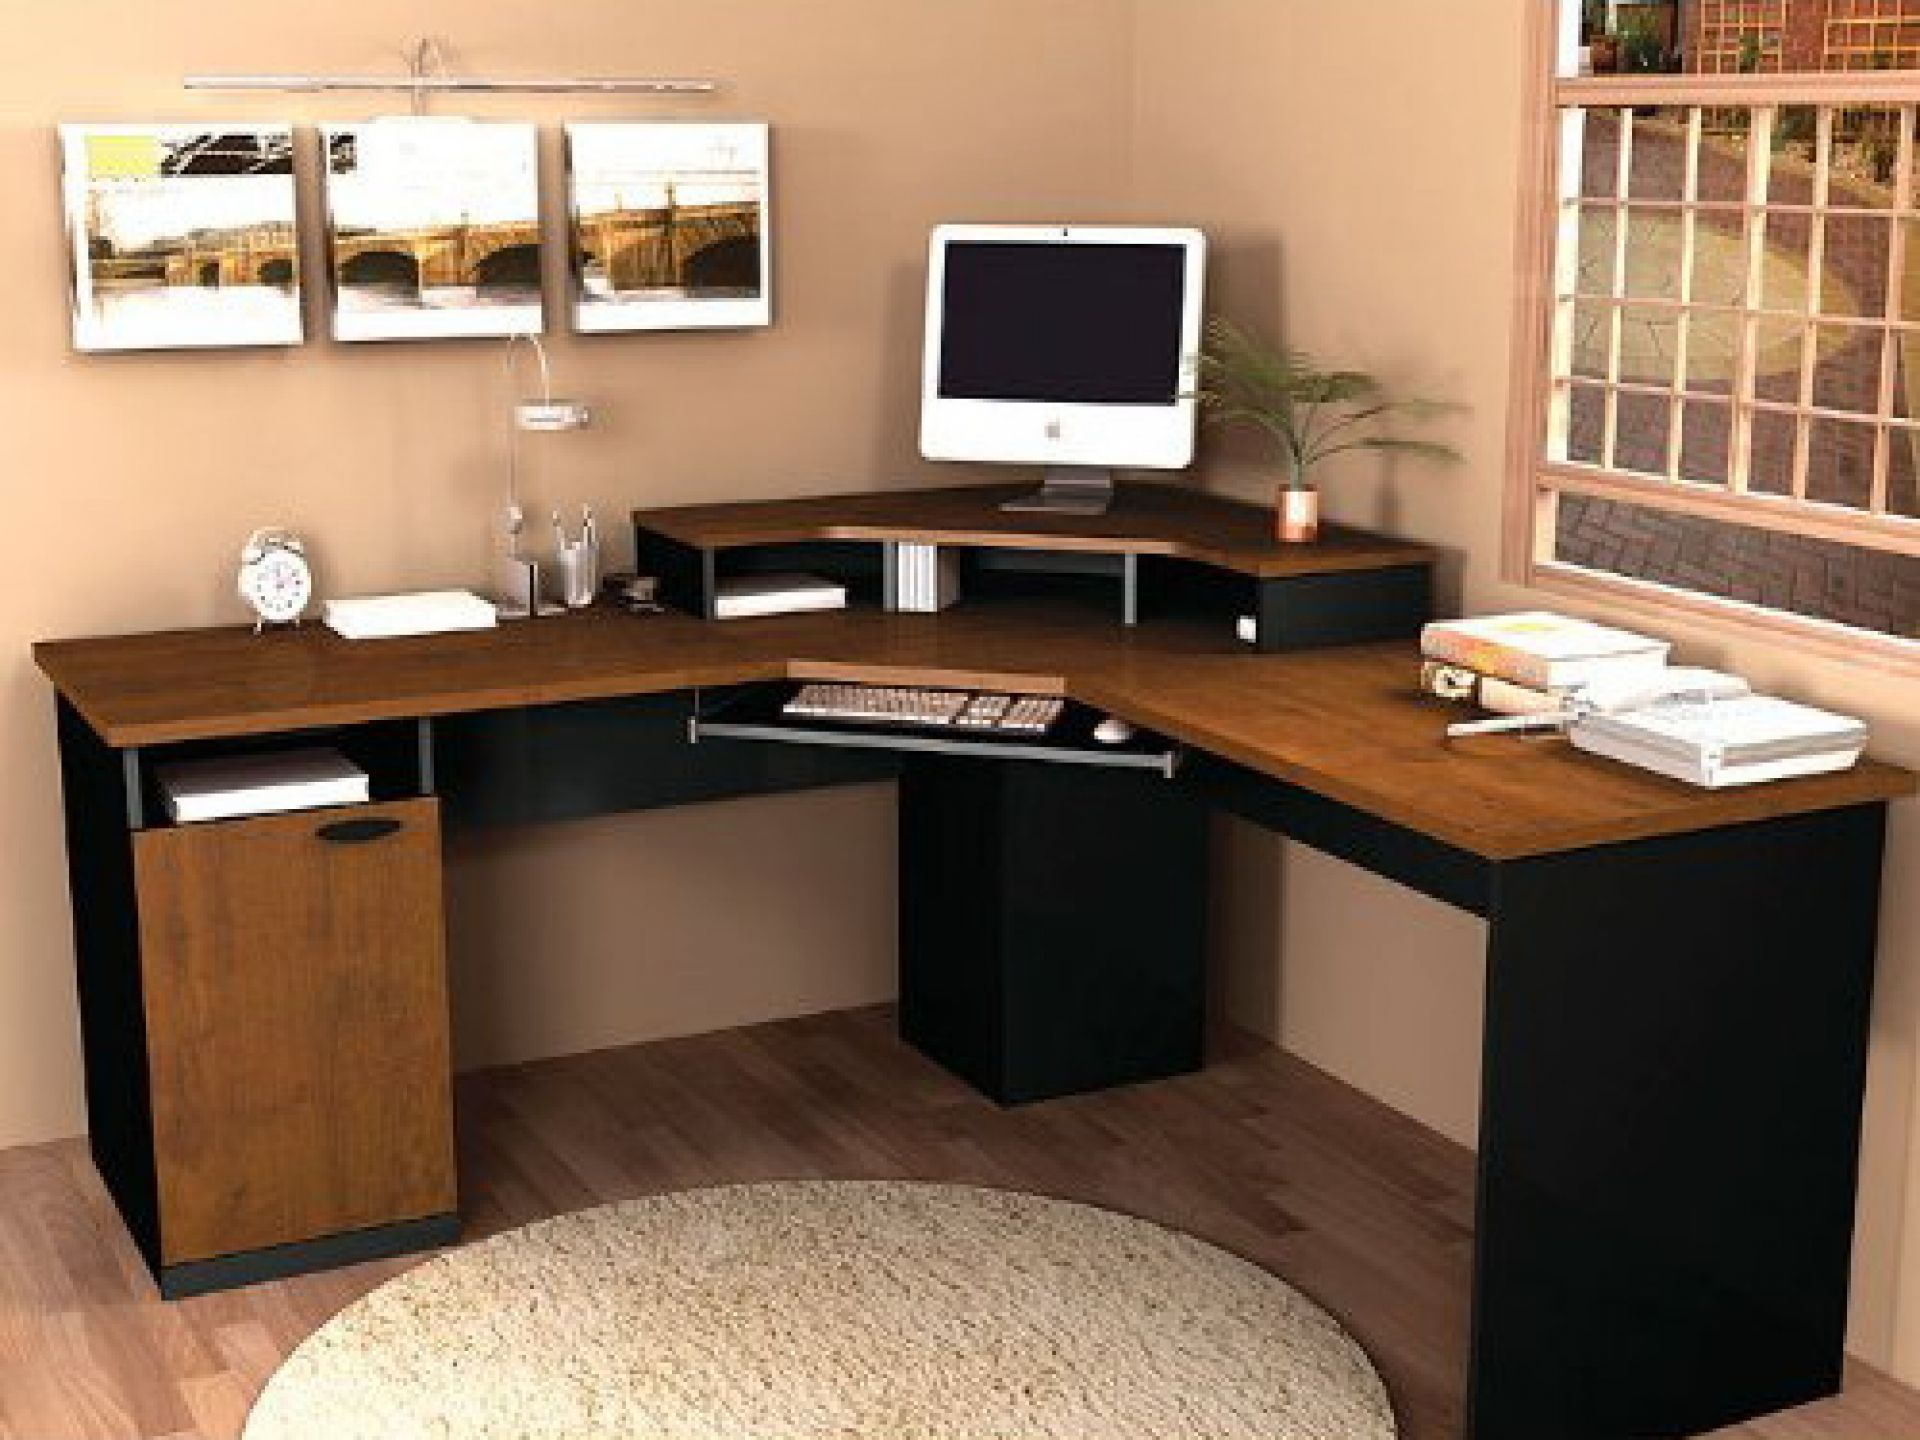 Workspaces Wooden Corner puter Desk With Cute Wall Hangings And